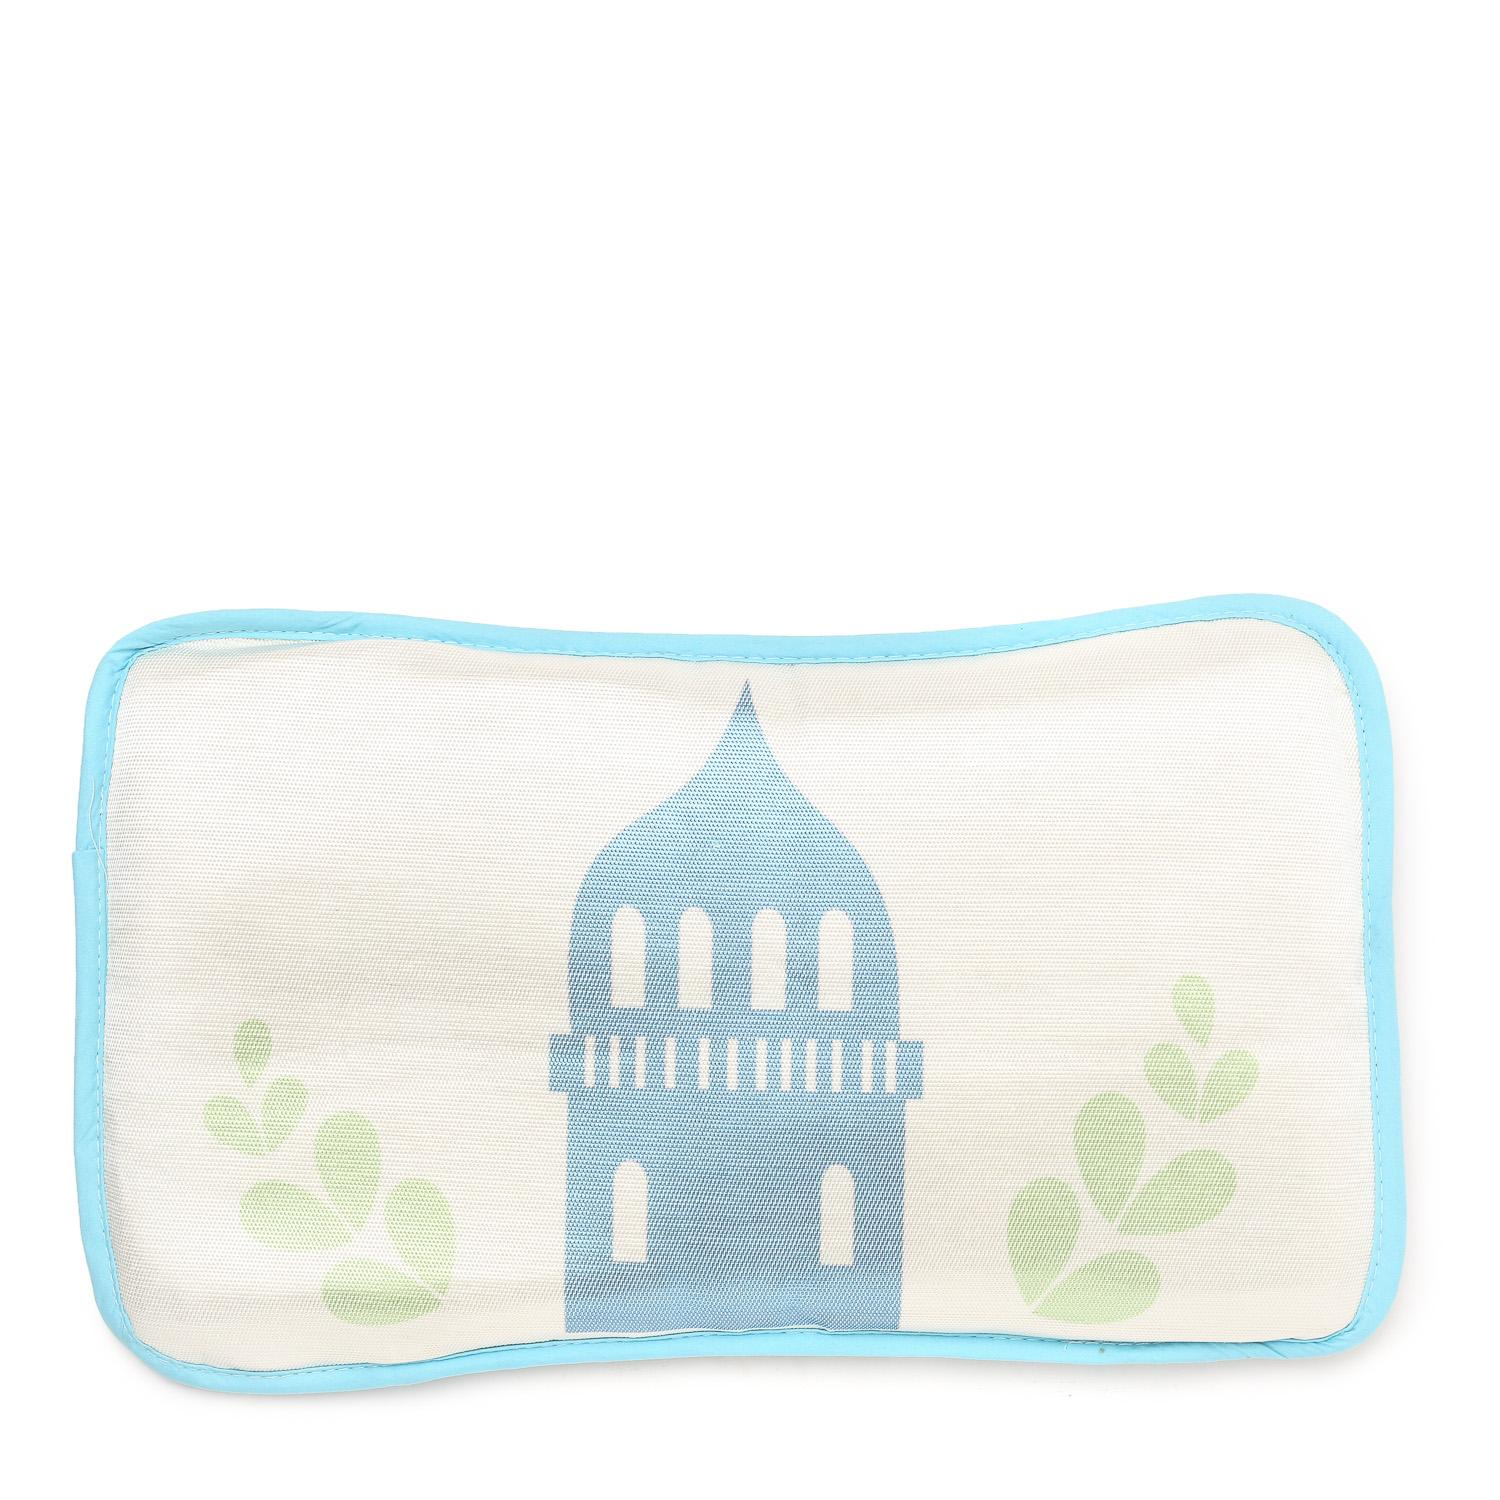 Bloom Sleeping Mat (blue) By The Sm Store.